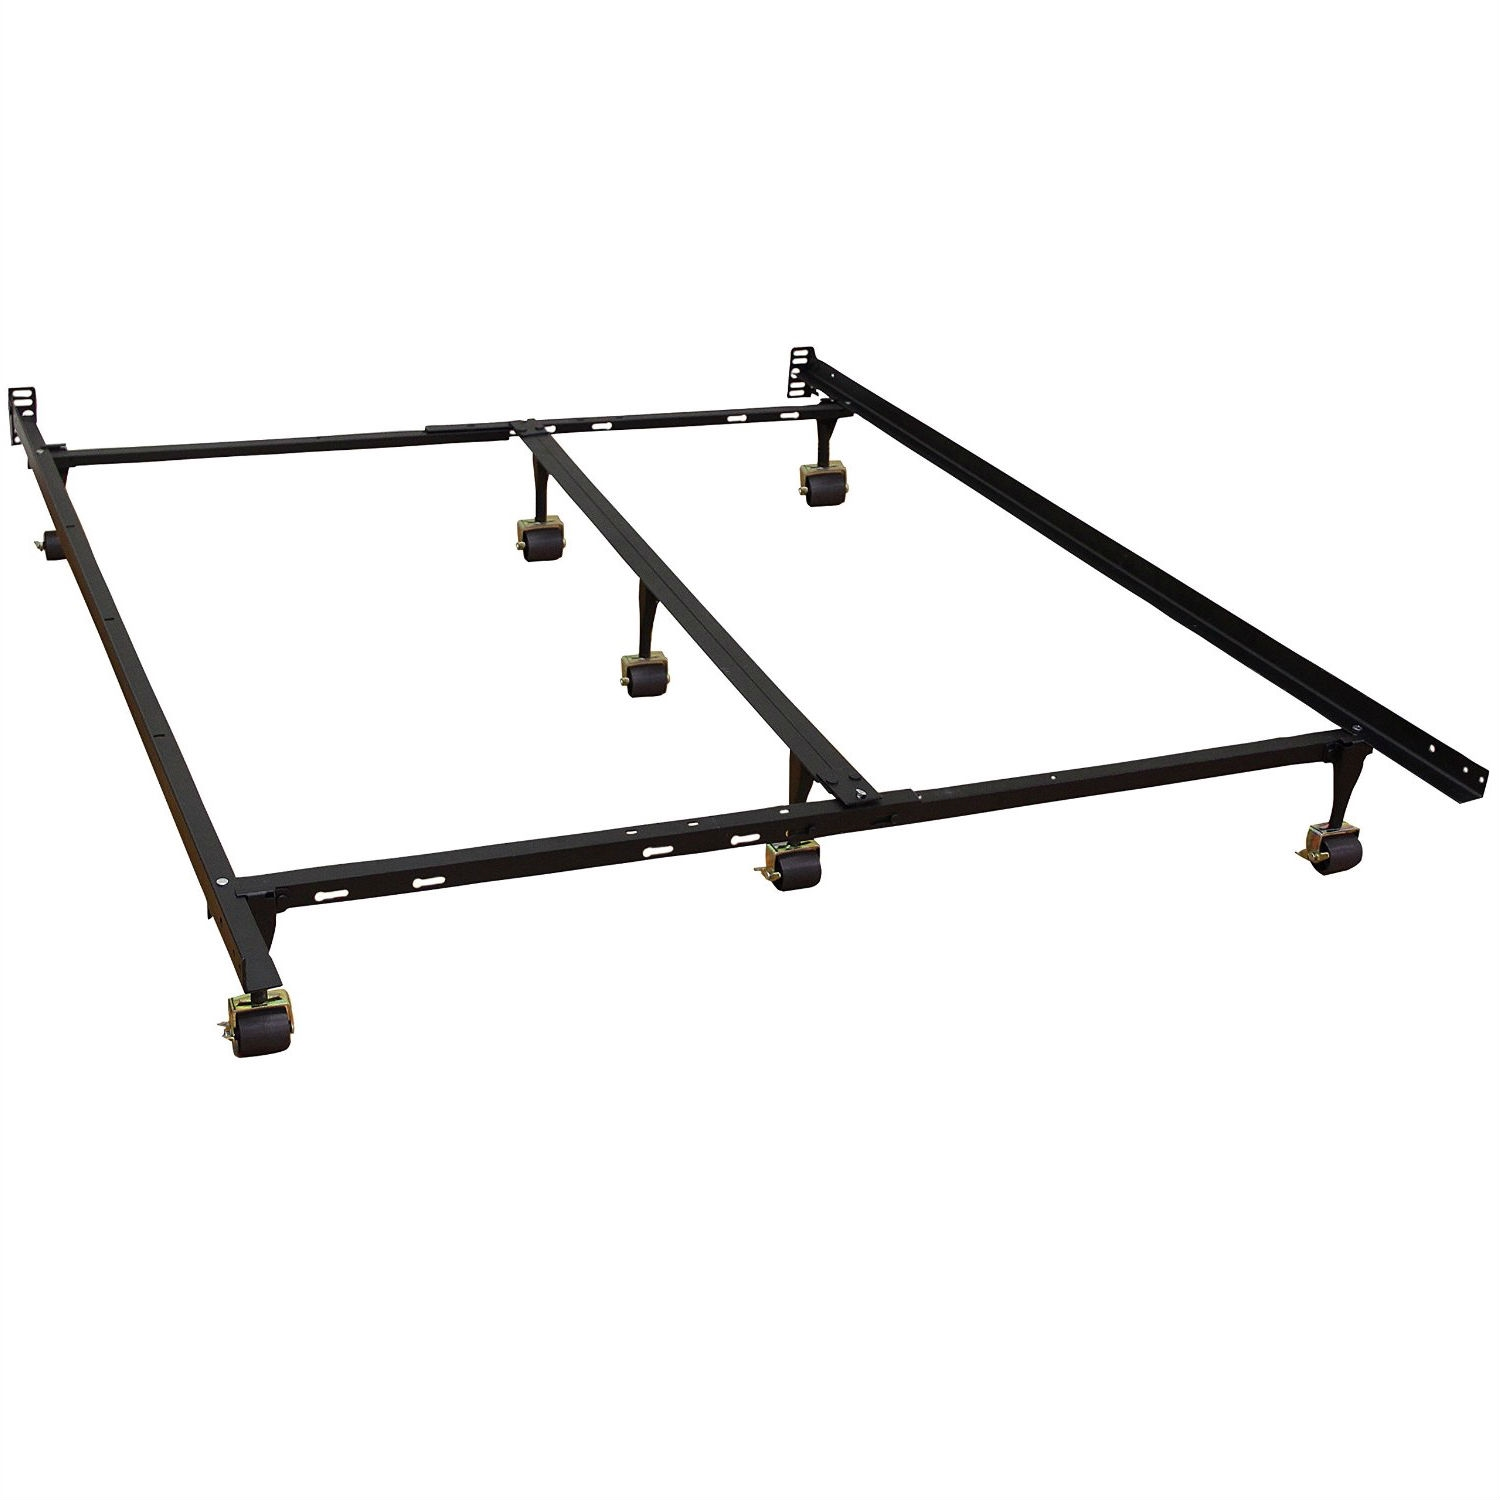 King Size Metal Bed Frame With 7 Legs And Heavy Duty Locking Rug Roller Wheels